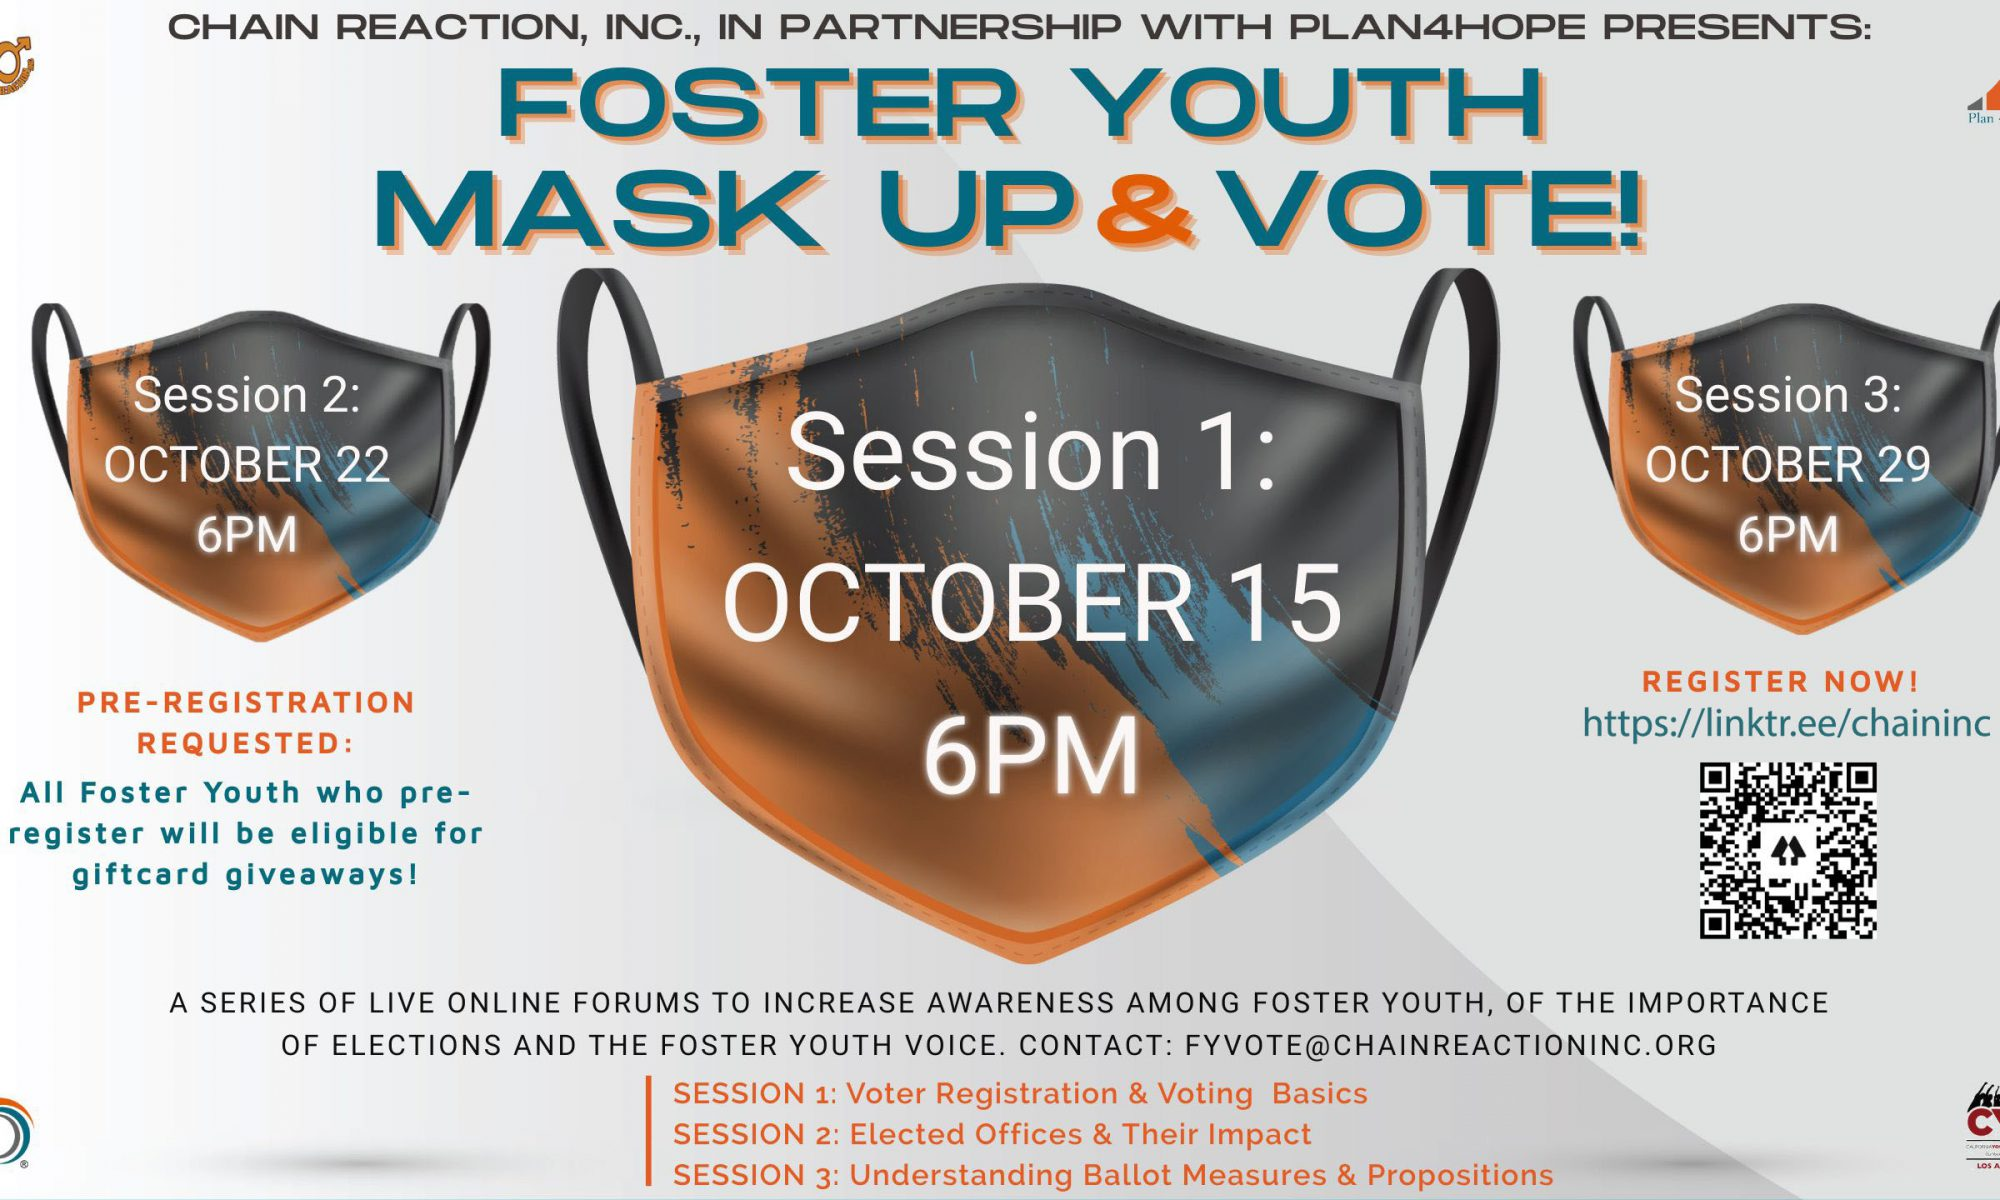 flyer foster youth Mask UP